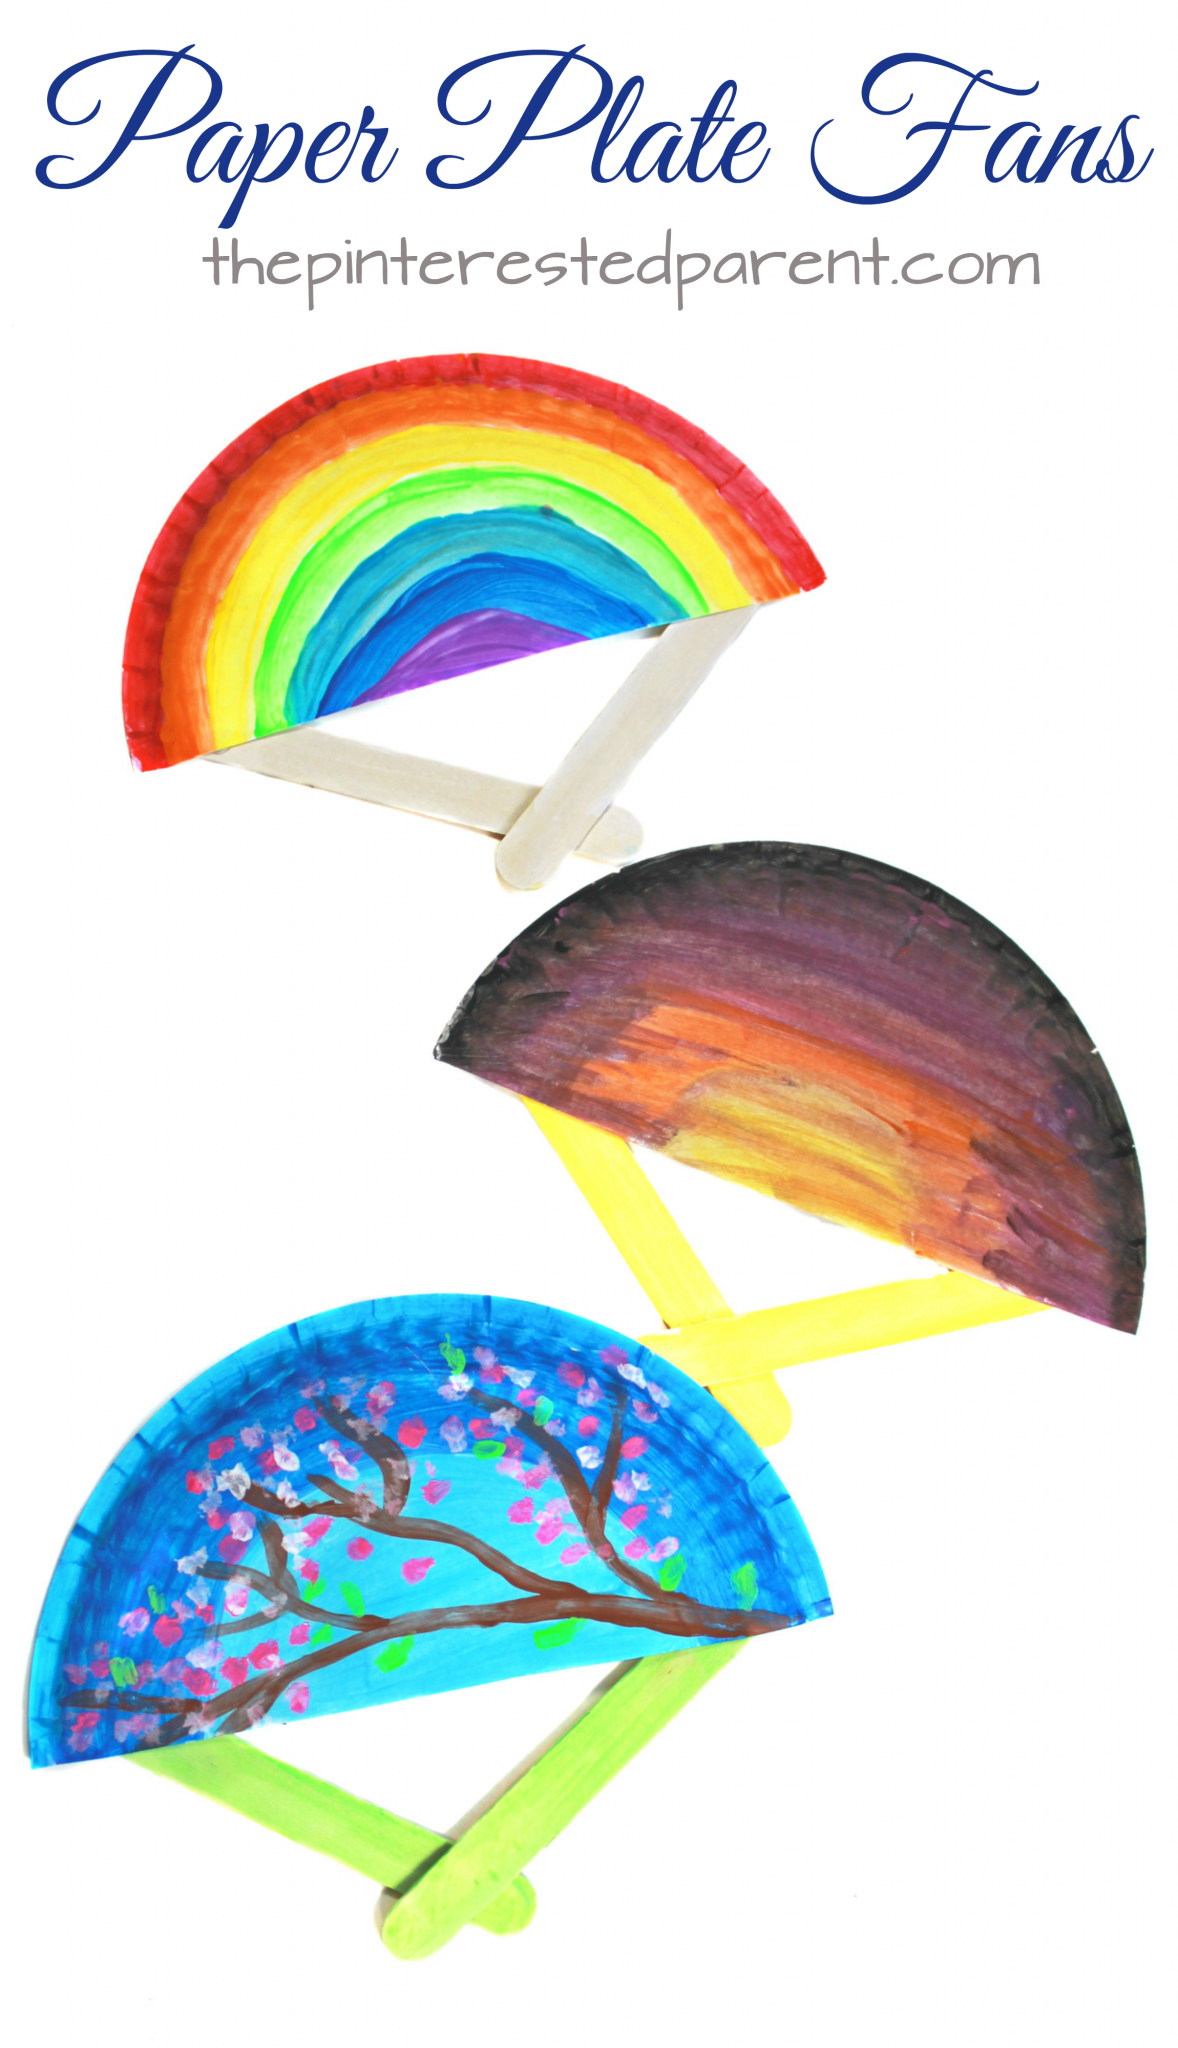 Paper Plate Fans For The Spring And Summer These Hand Are A Simple Arts Craft Project That Is Perfect Toddlers Preschoolers Kids Of All